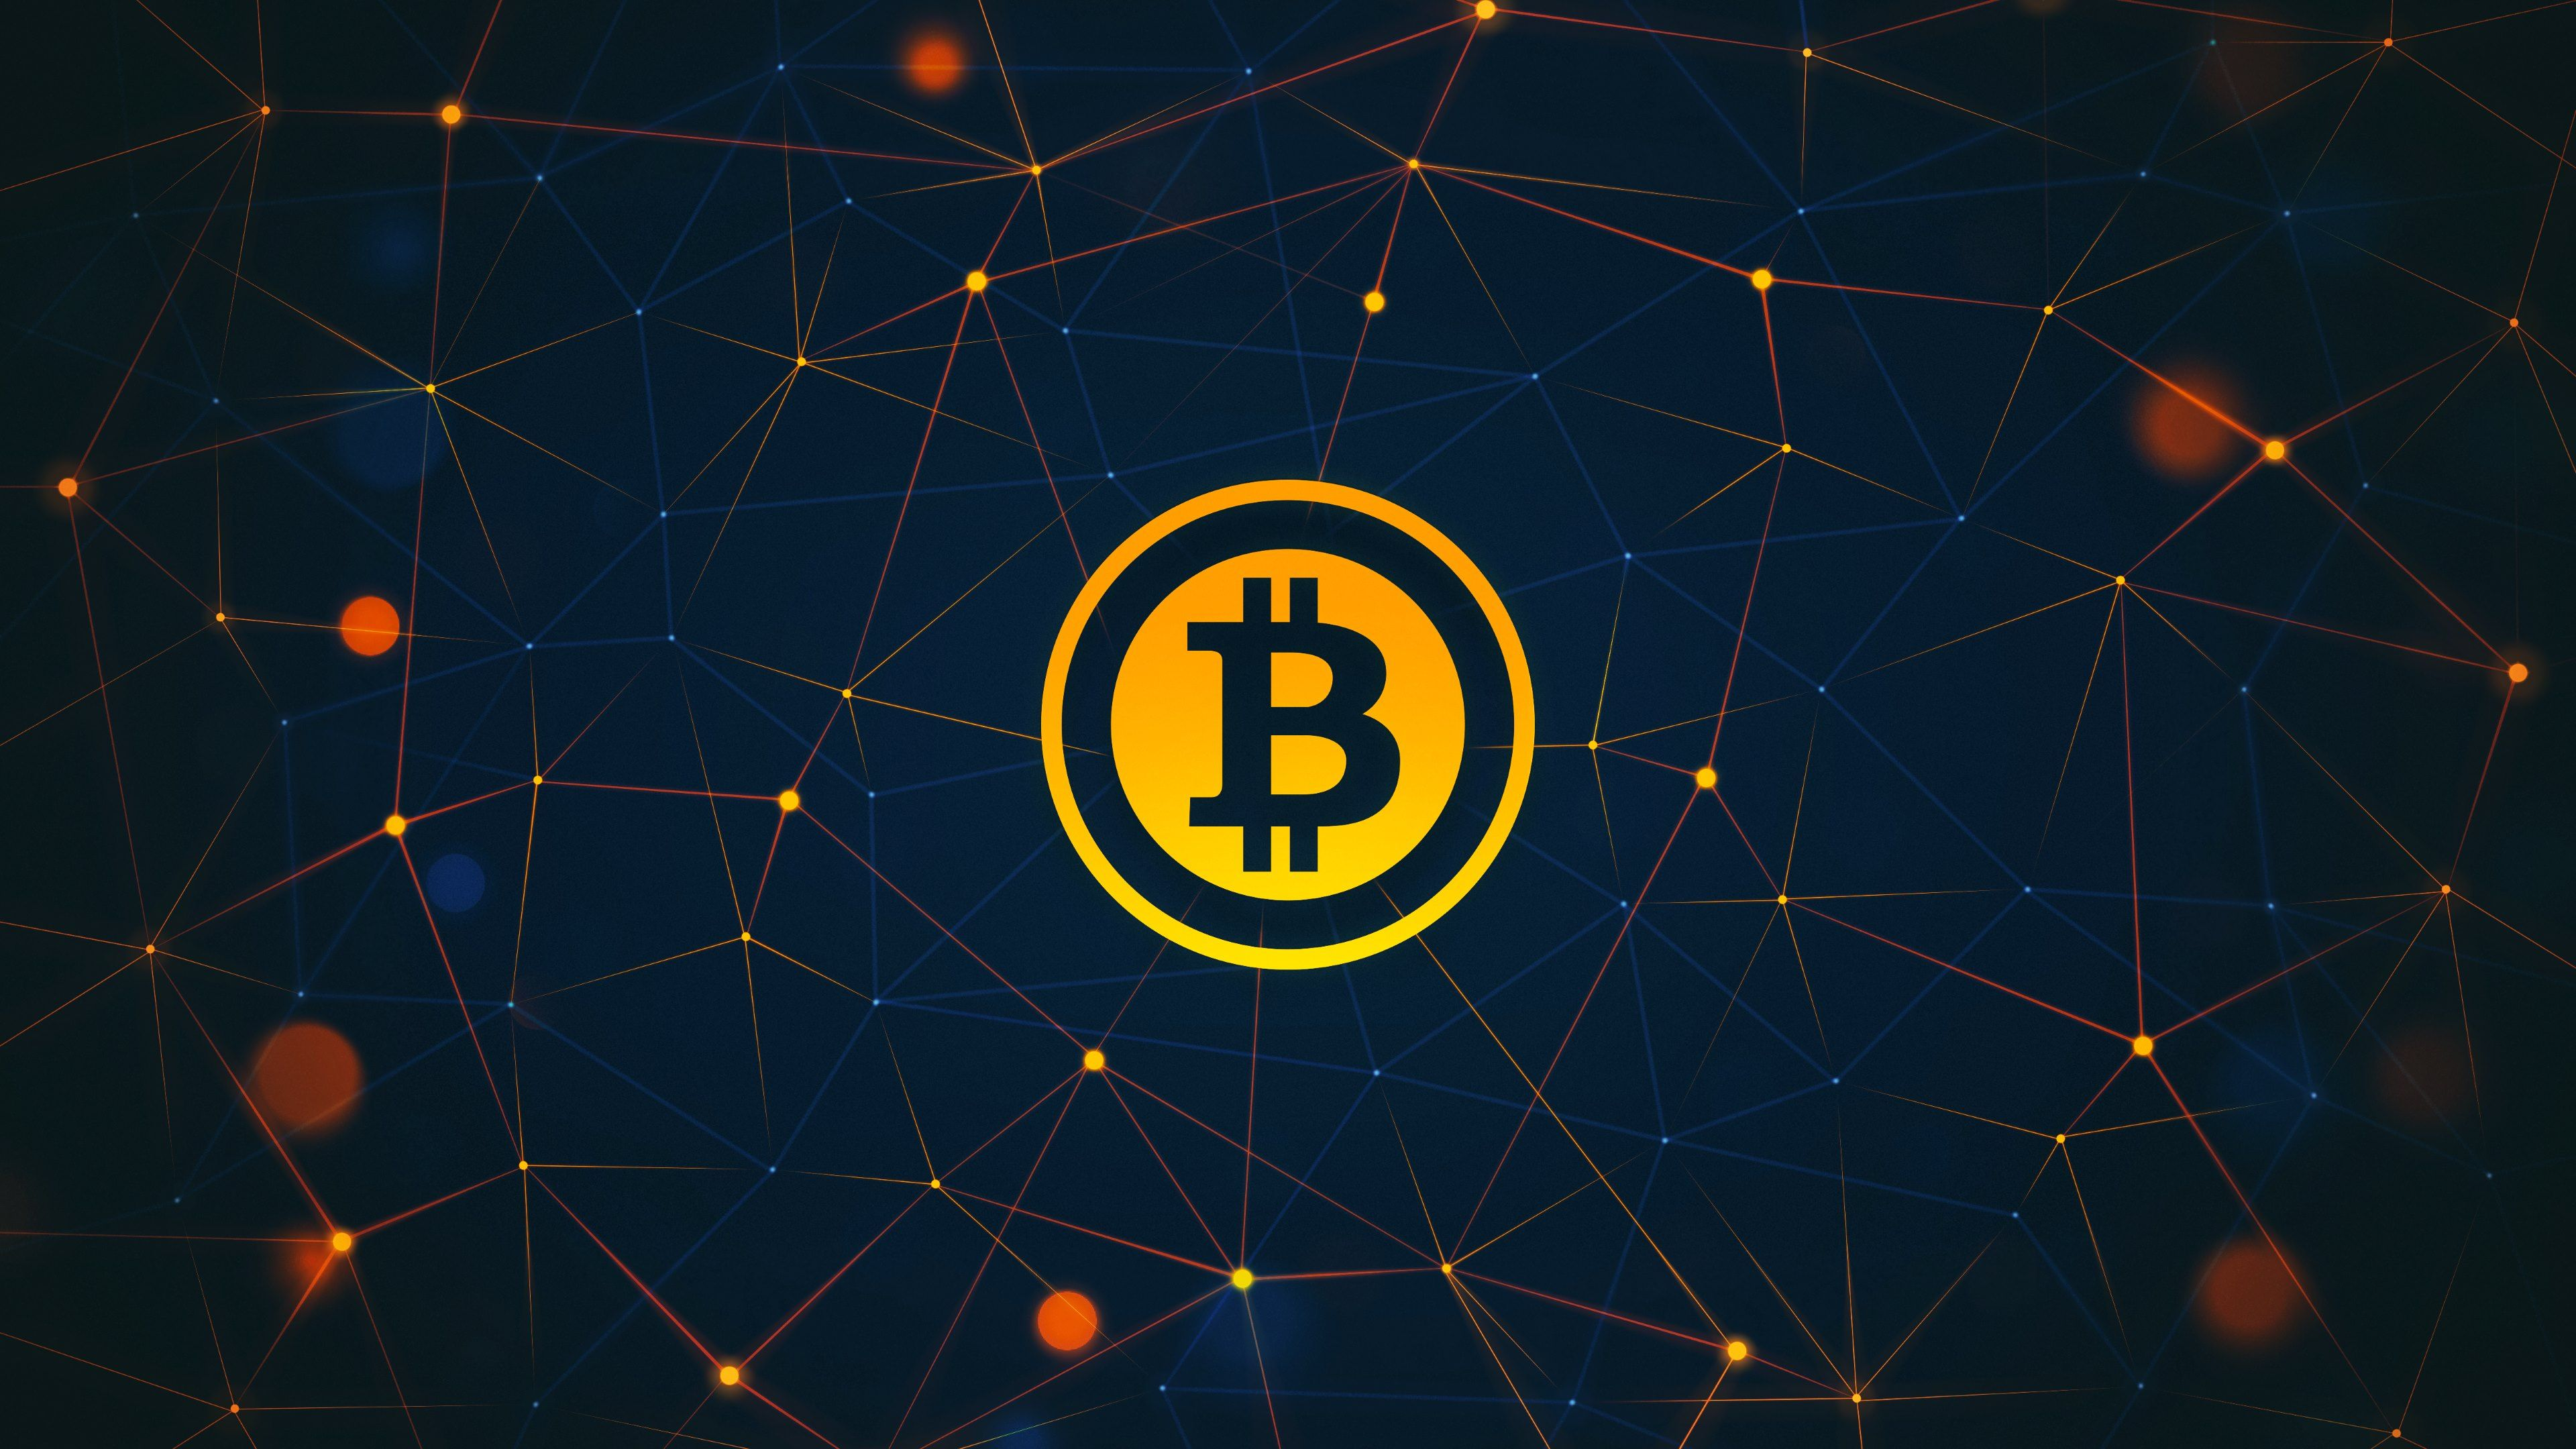 Bitcoin images hd / Predict bitcoin price machine learning